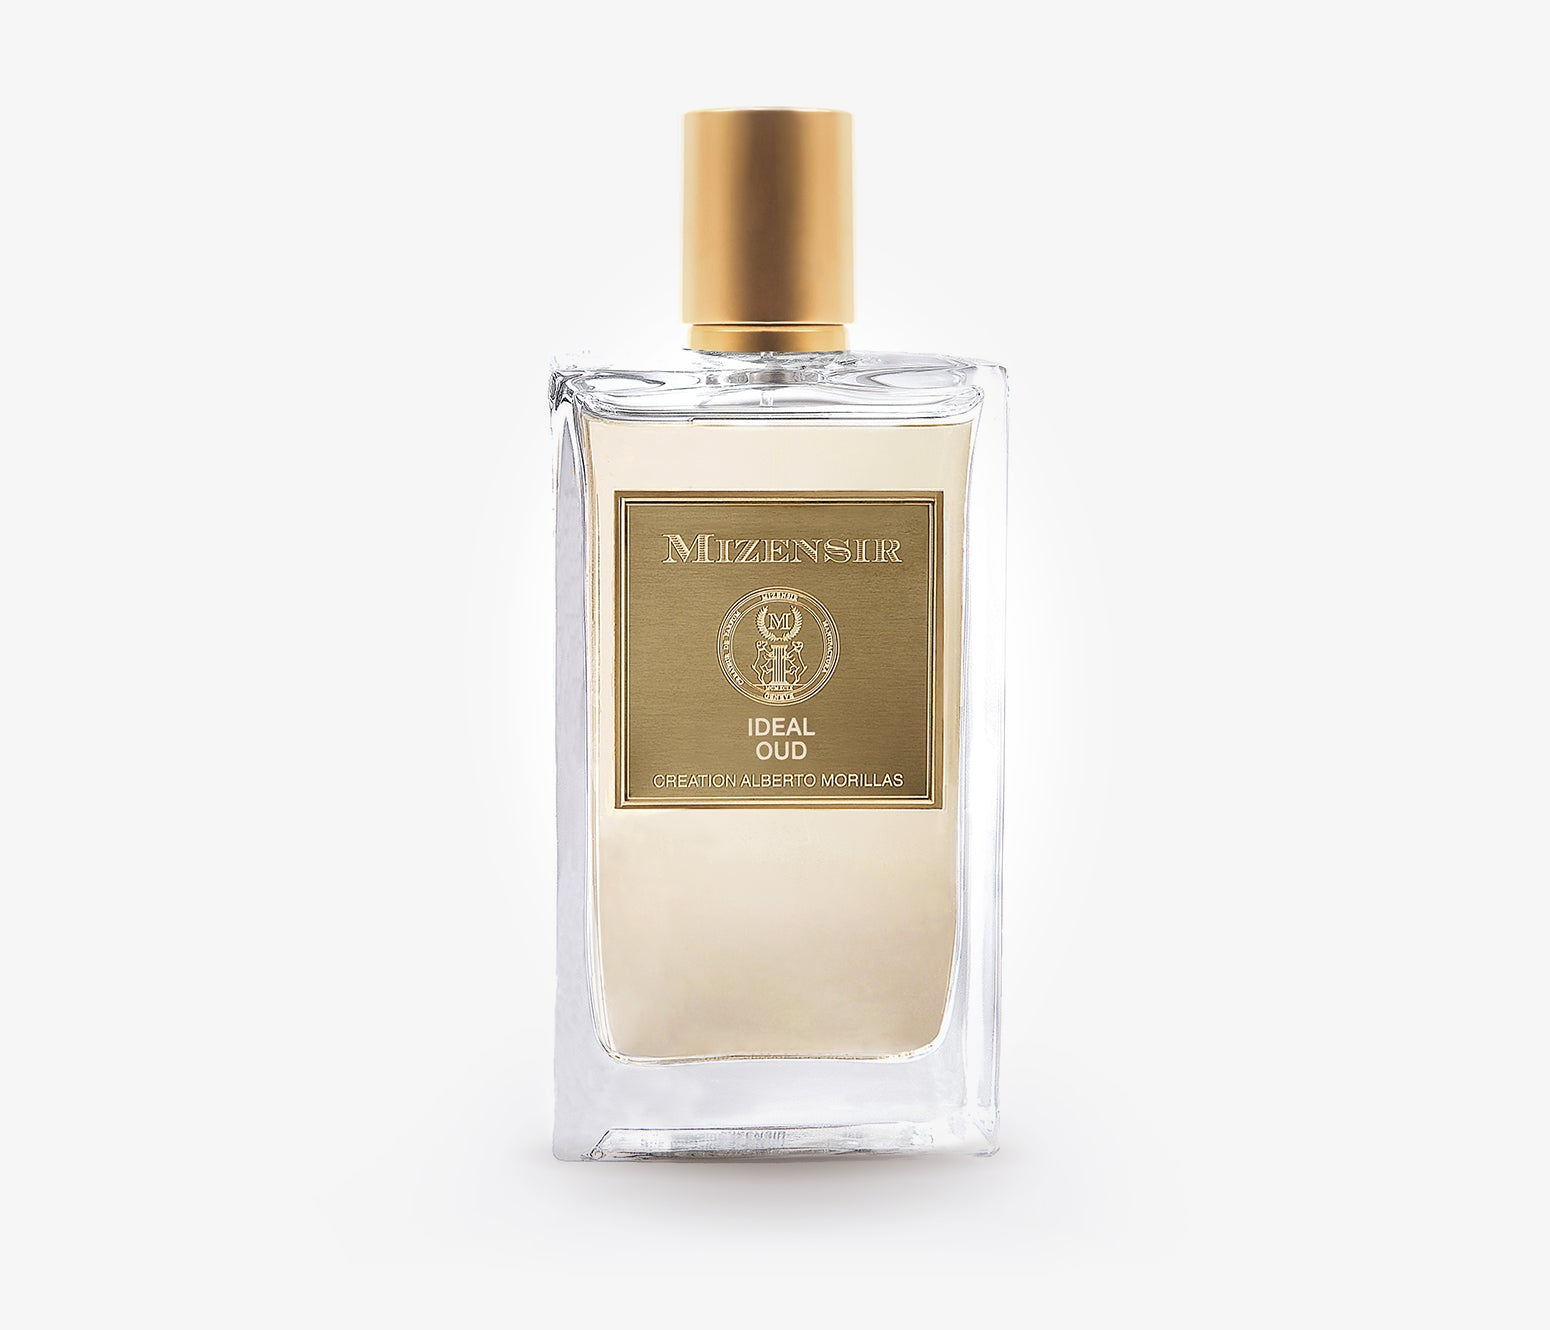 Mizensir - Ideal Oud - 100ml - YBT001 - product image - Fragrance - Les Senteurs